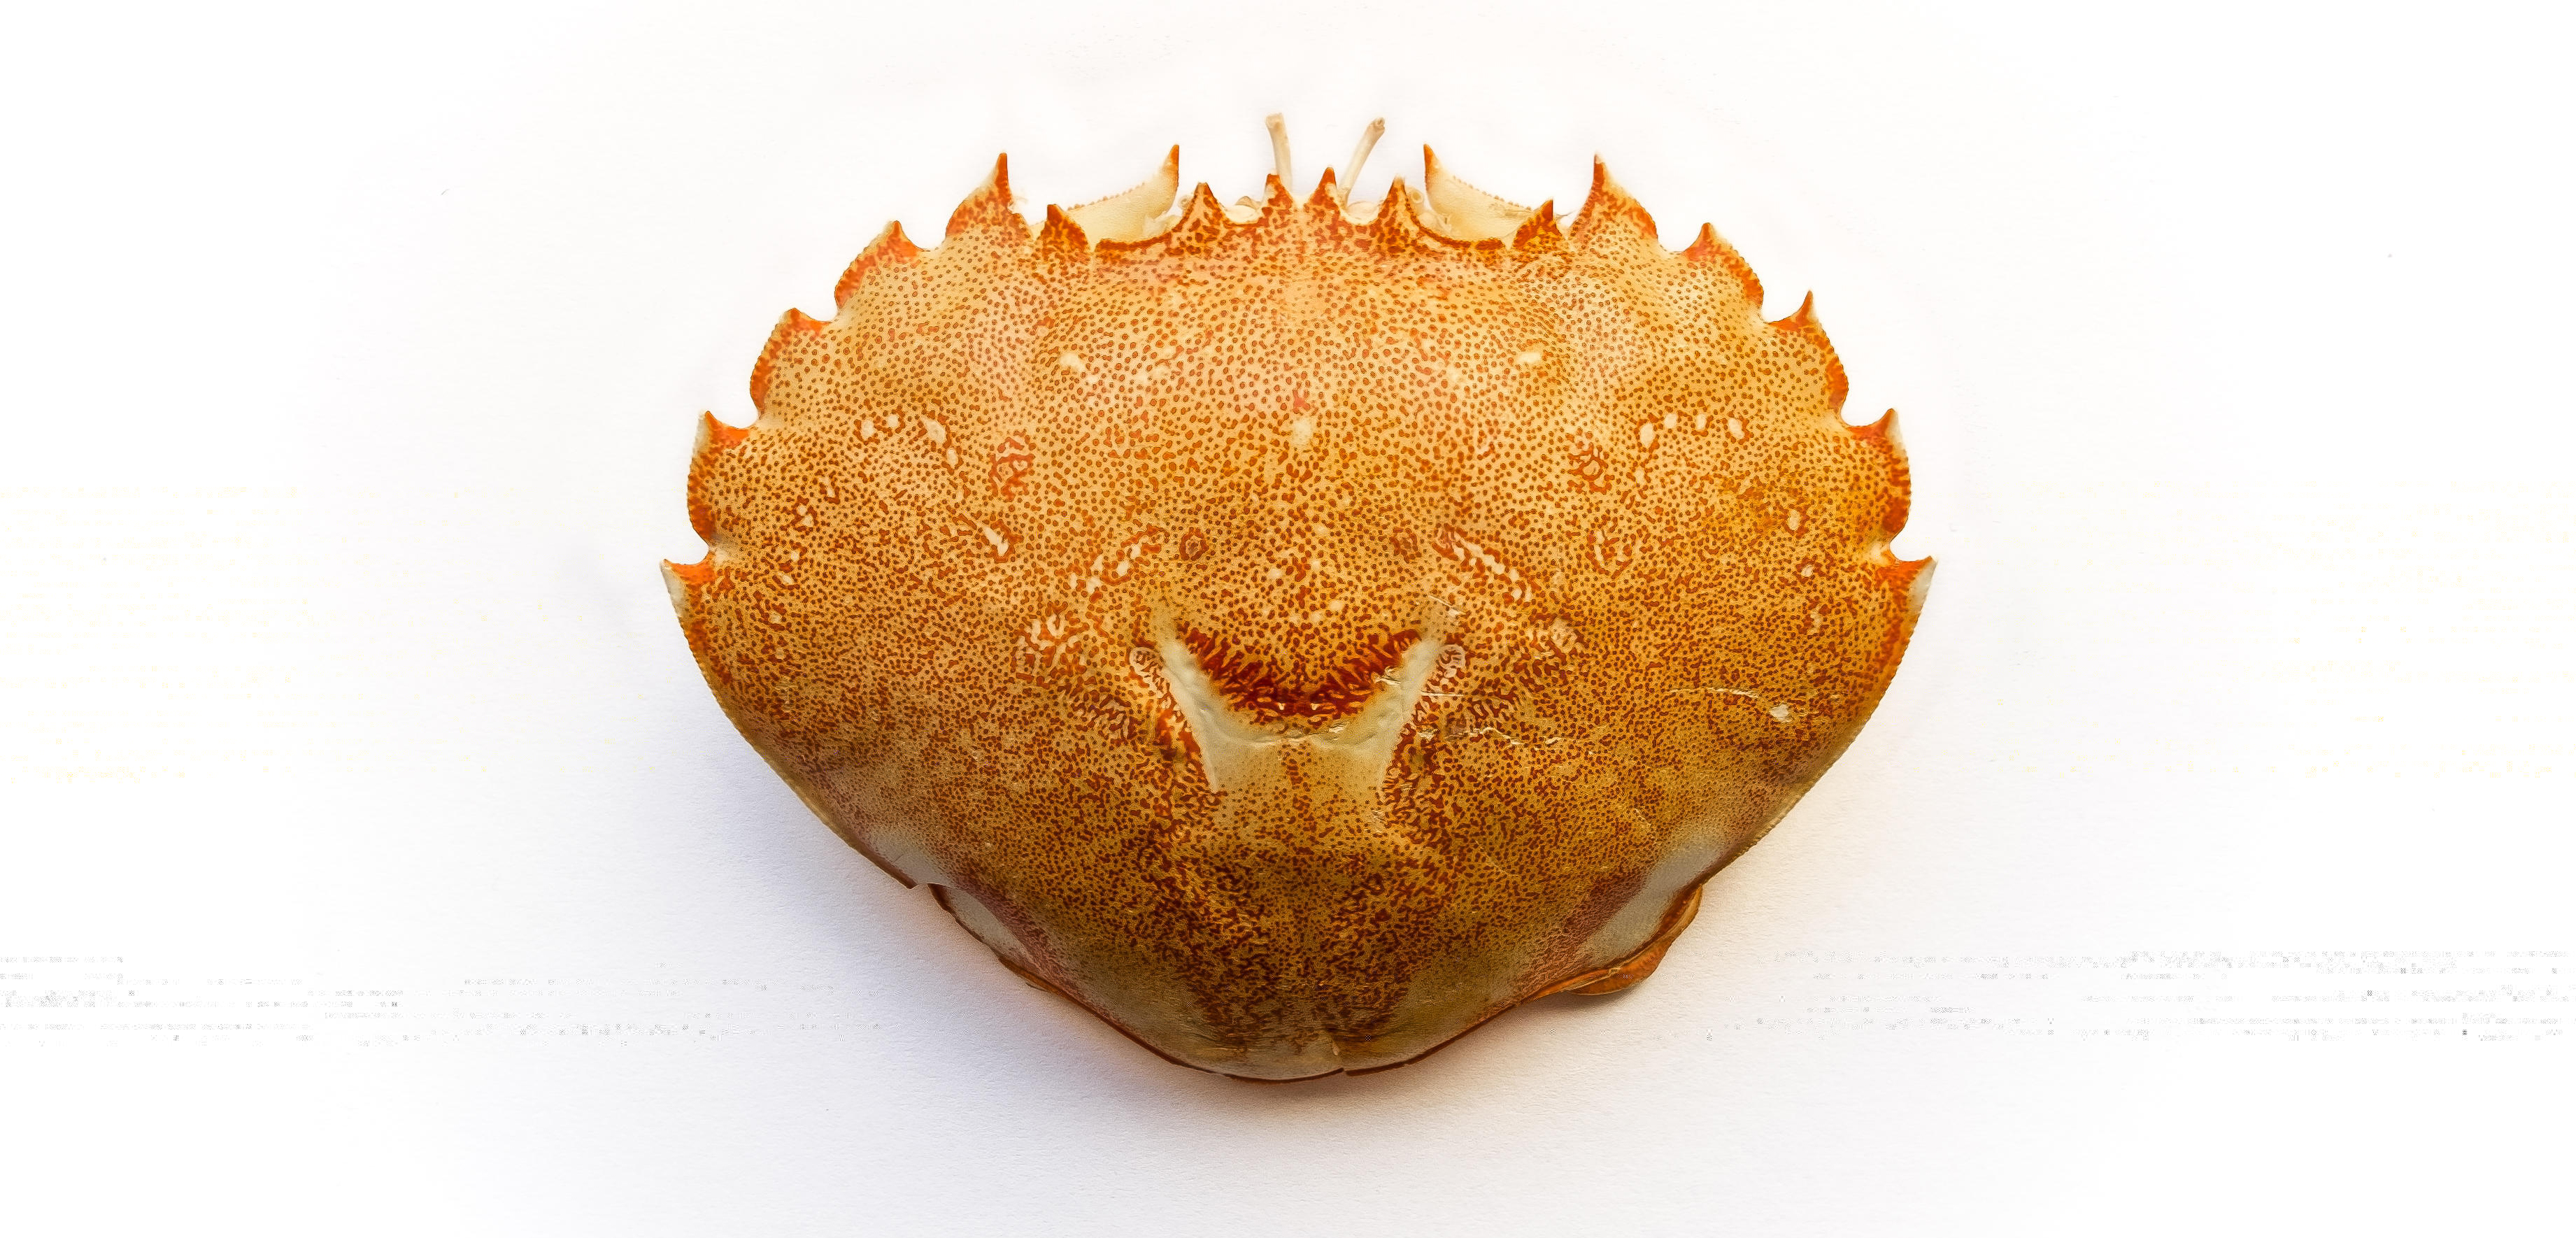 Chitin from crab and lobster shells can be chemically transformed into all sorts of useful materials. Photo by EyeEm Mobile GmbH/Alamy Stock Photo